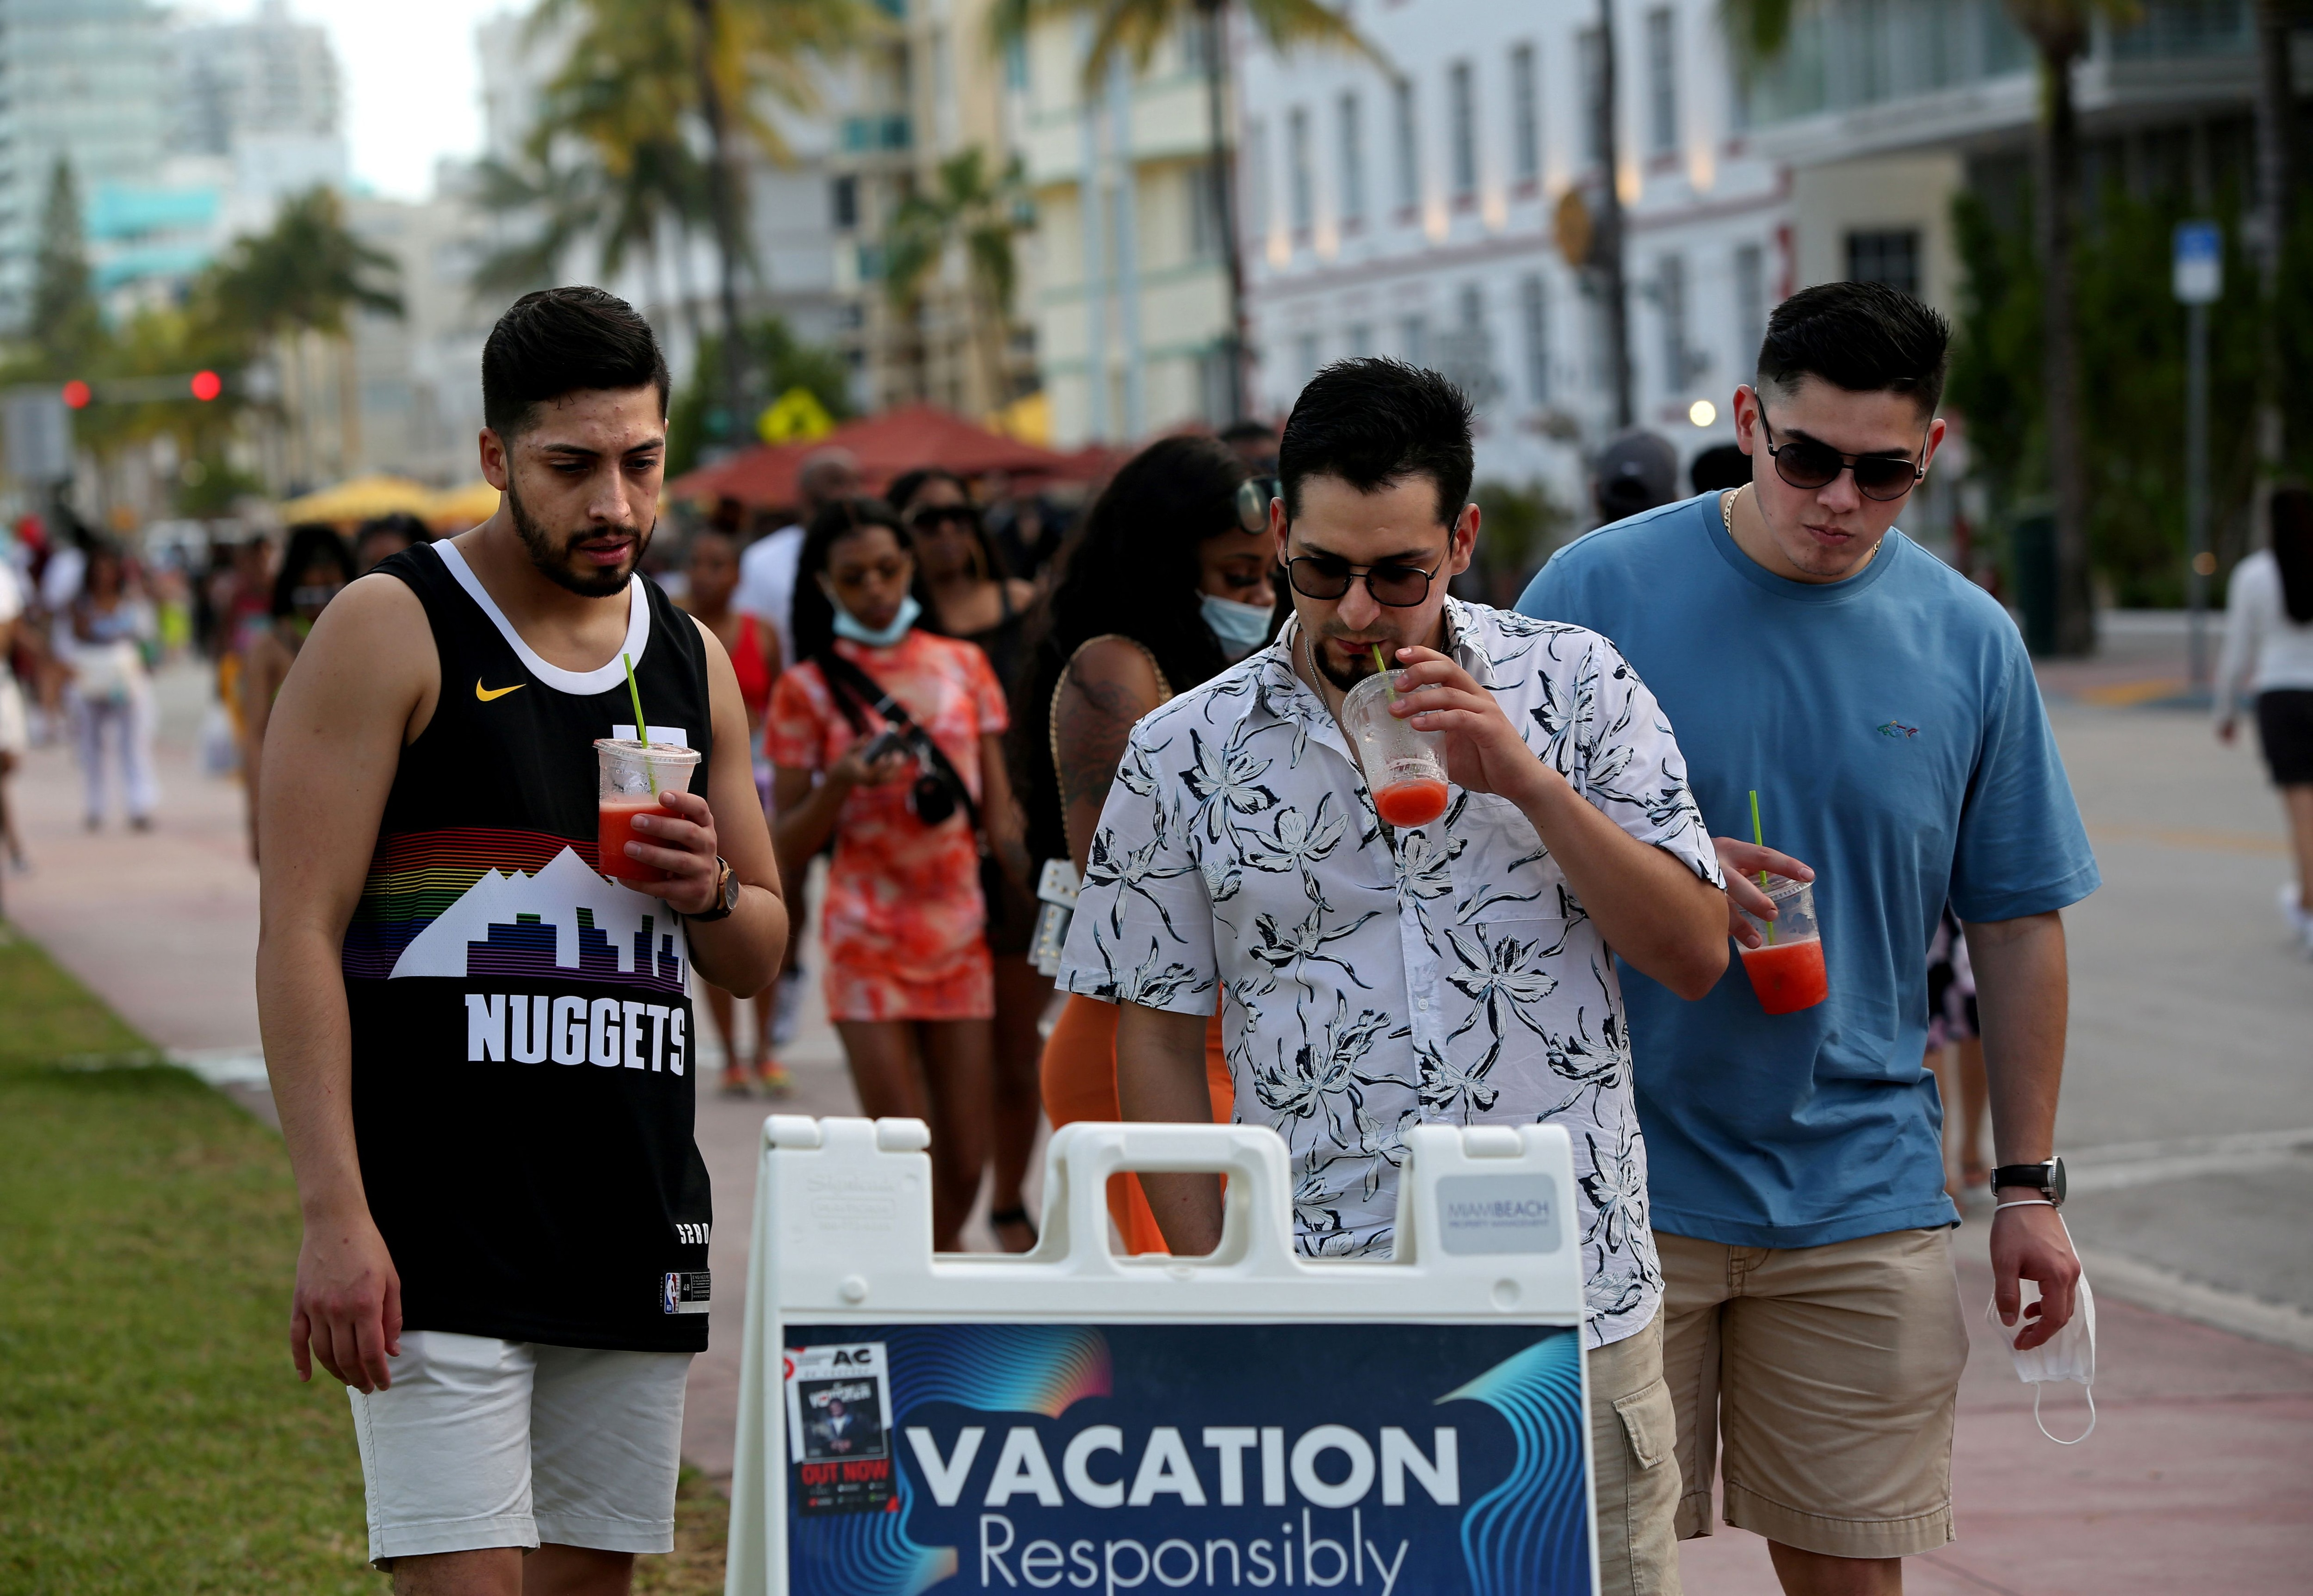 FILE PHOTO: A group of men read public safety precautions while enjoying the bars and restaurants on South Beach during Spring Break amid the coronavirus disease (COVID-19) pandemic, in Miami, Florida, U.S., March 27, 2021.  REUTERS/Yana Paskova/File Photo